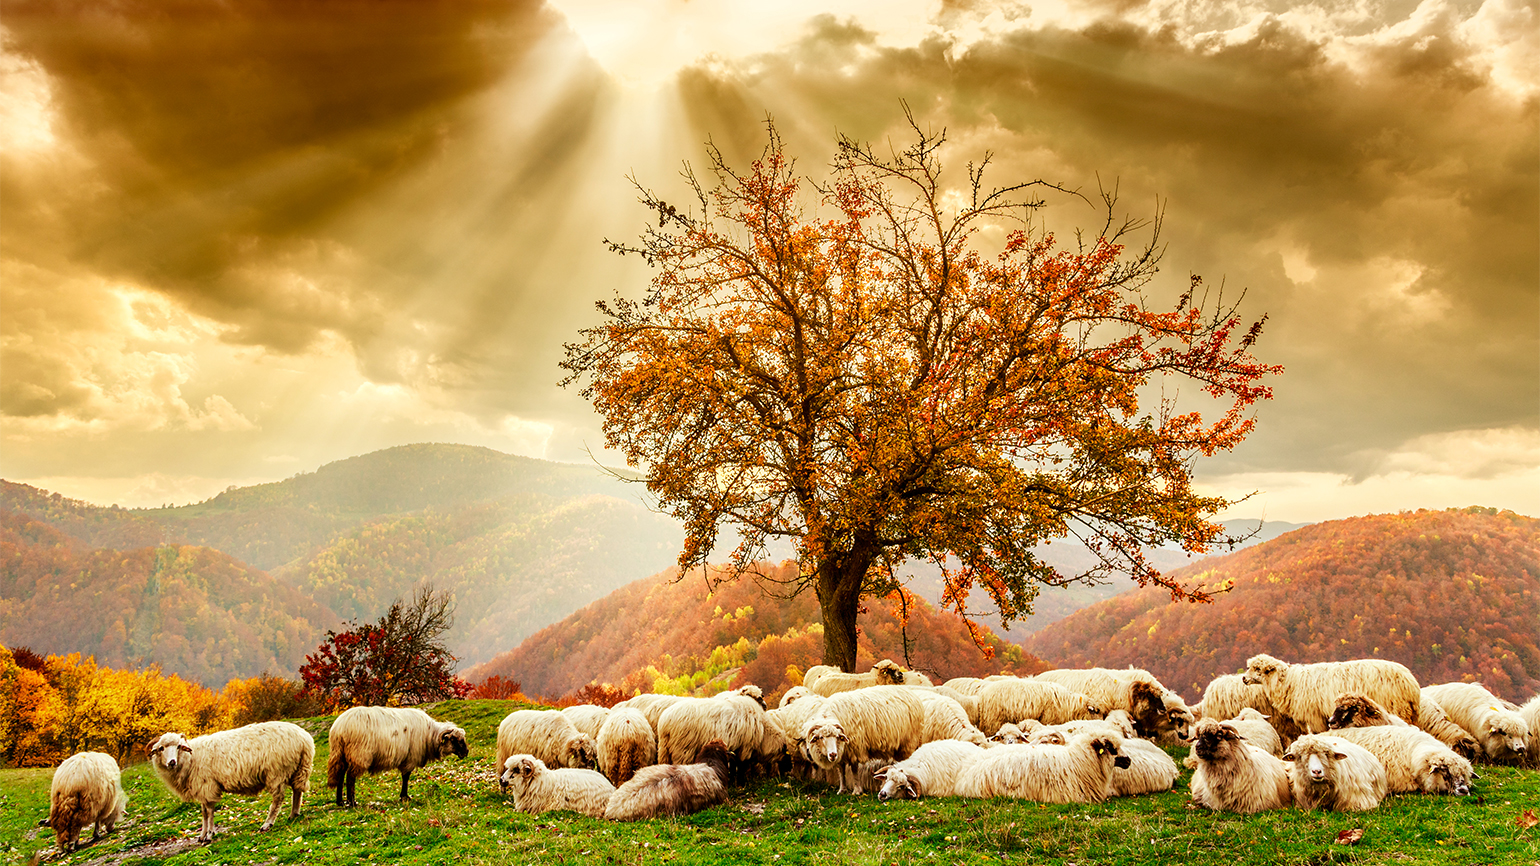 A flock of sheep in a sun-drenched meadow